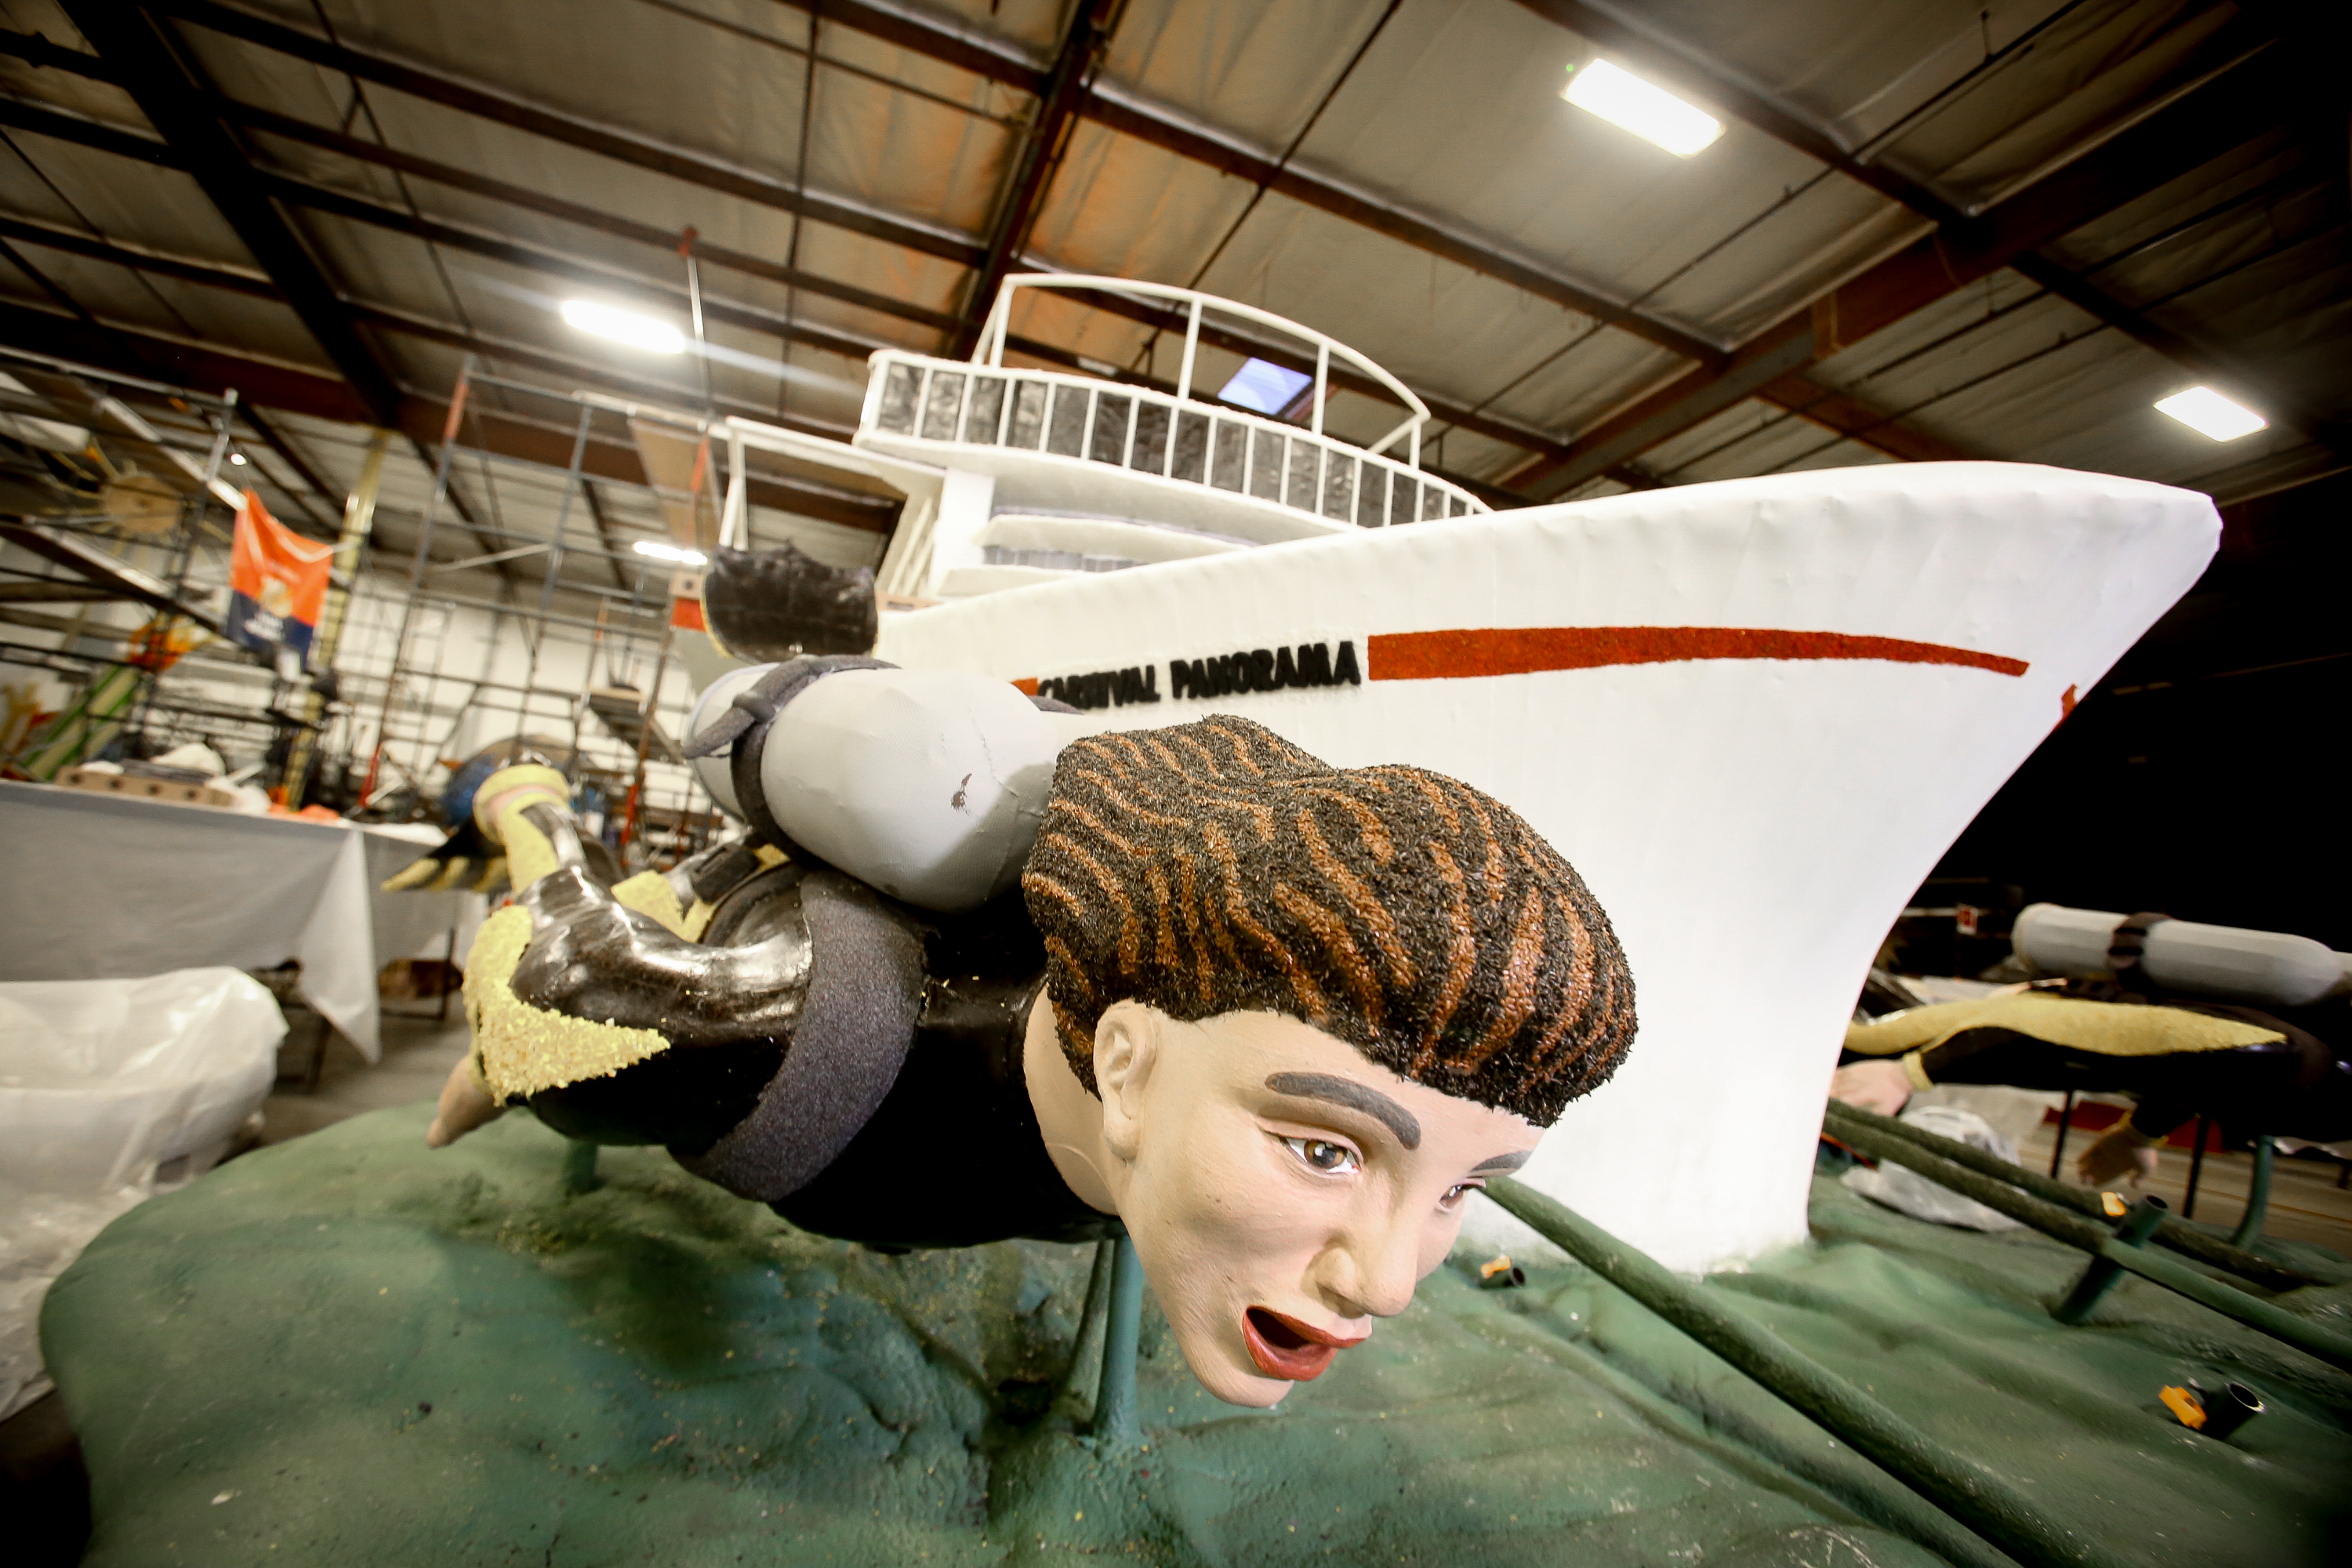 Royalty and Roses Marks Ceremony to Name Carnival Cruise Line Float for Rose Parade